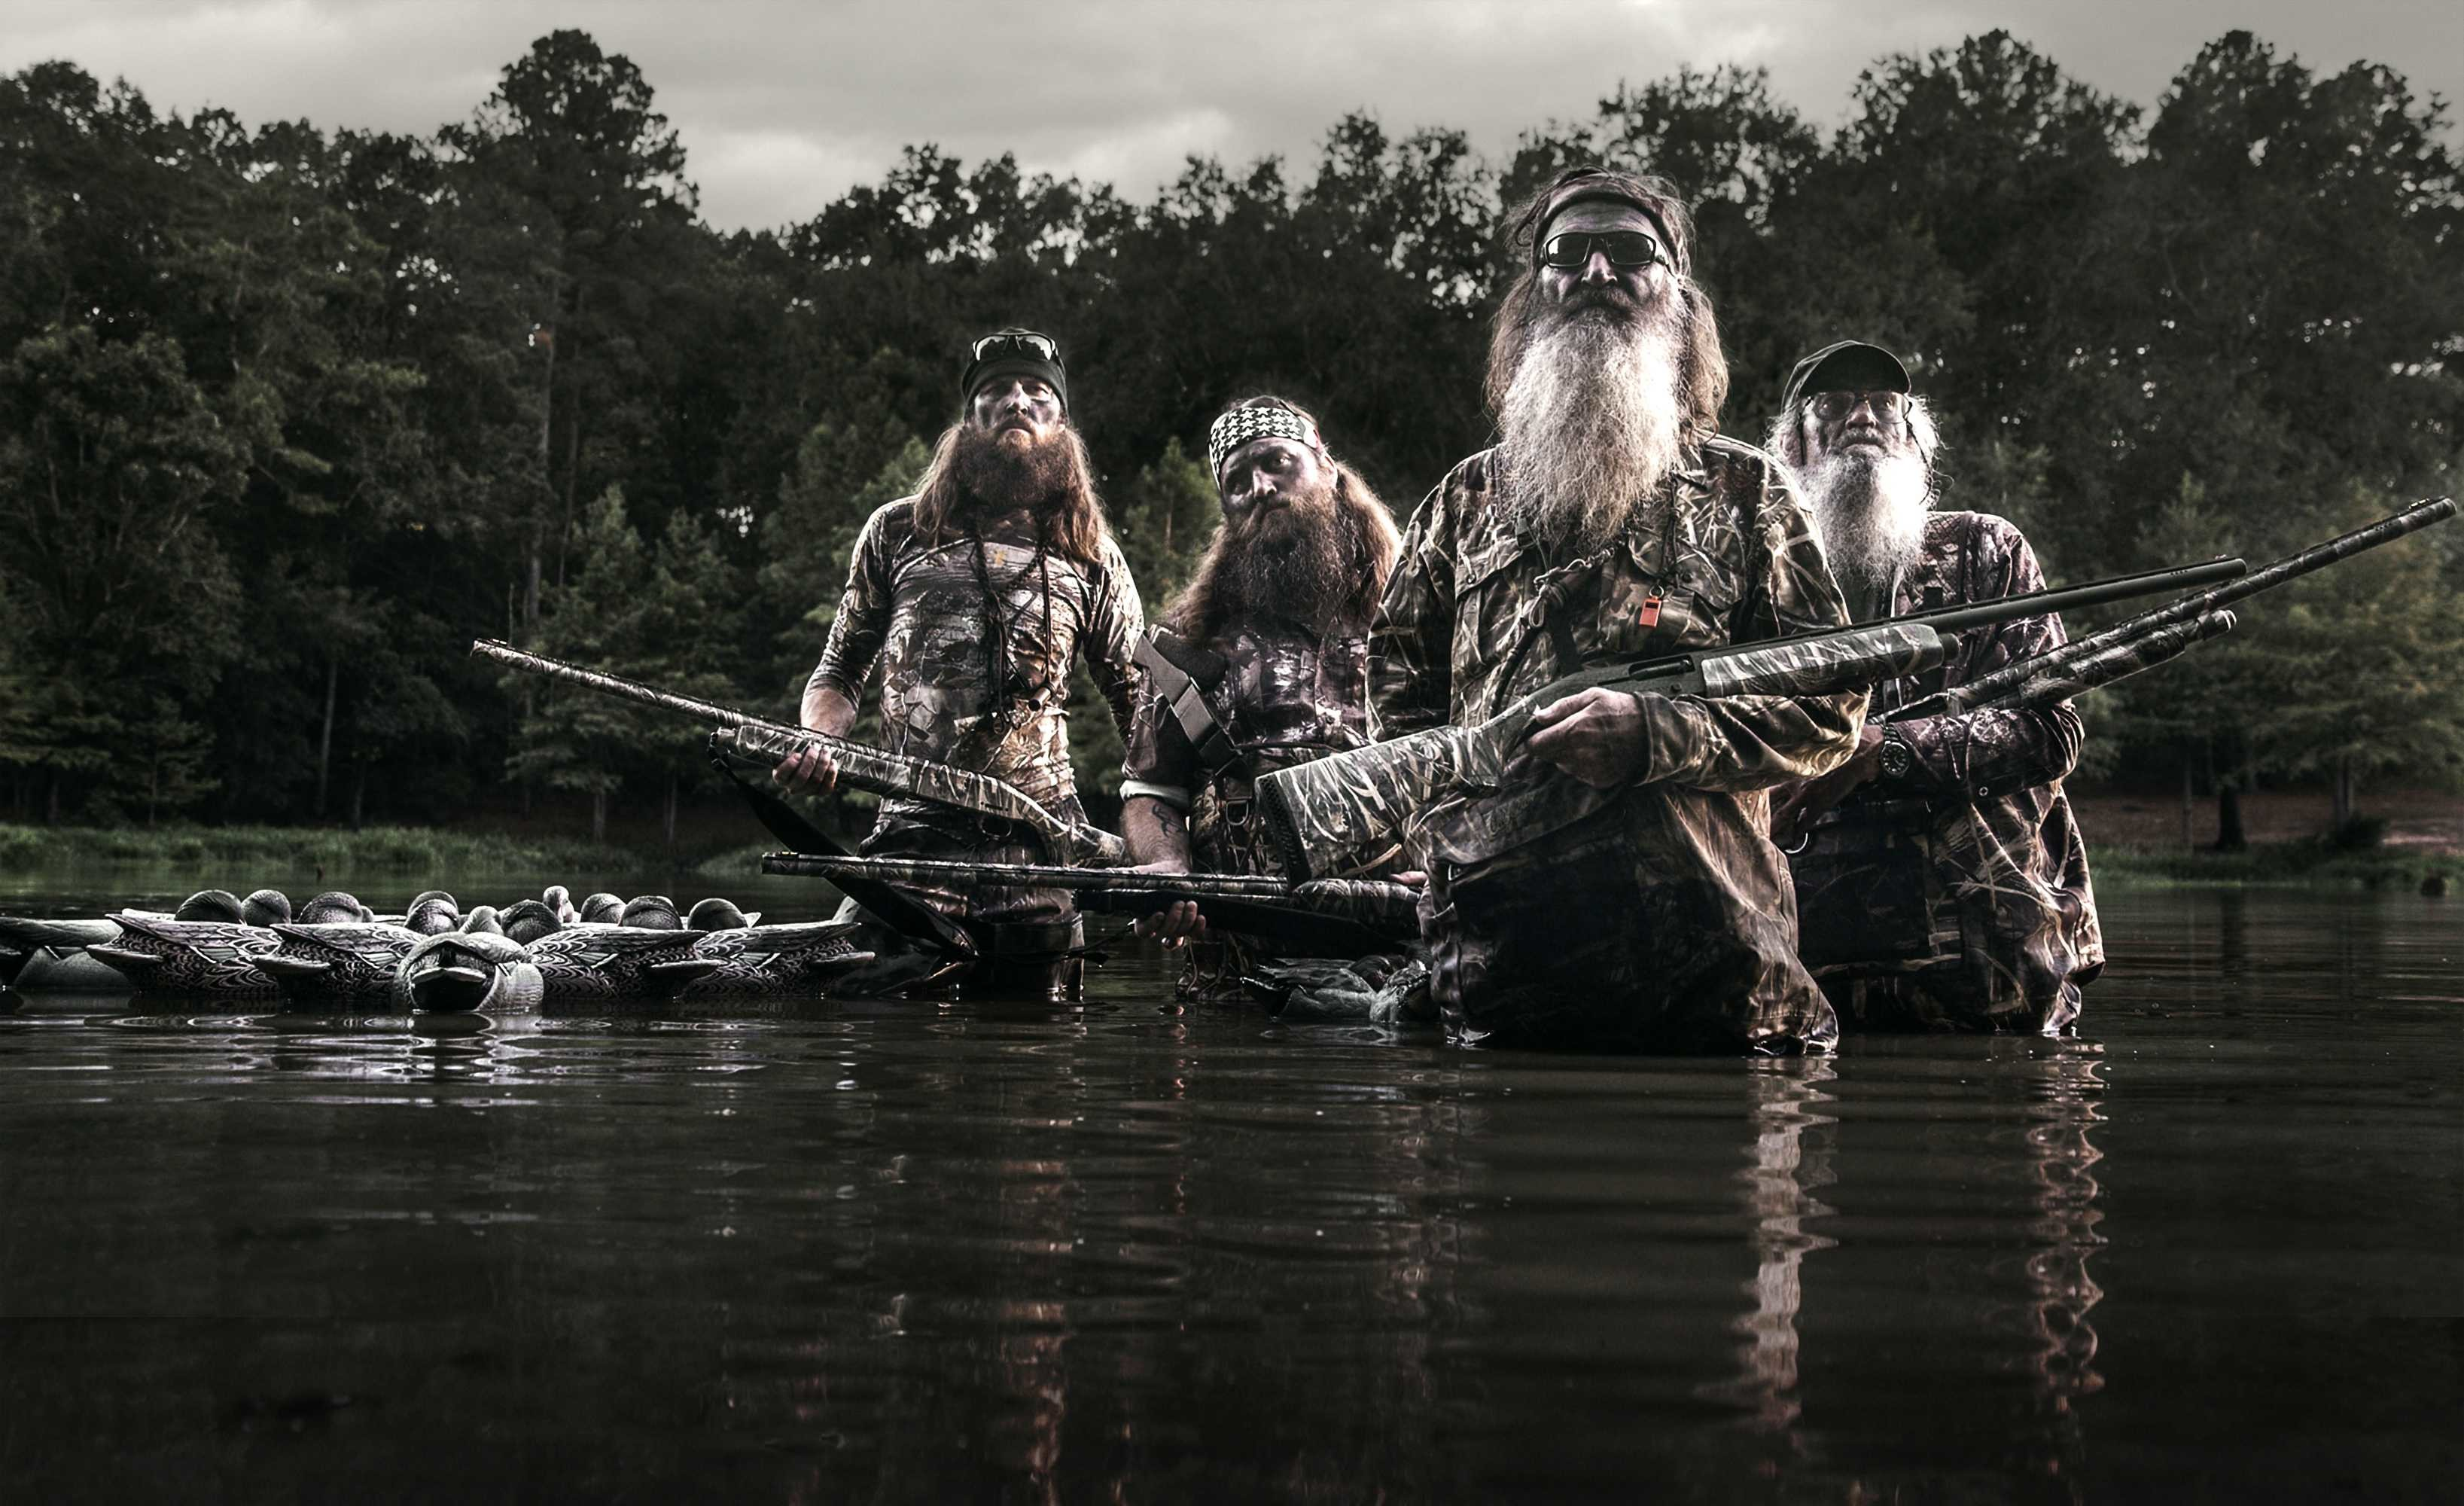 Res: 3273x2000, Duck Dynasty Full Hd Wallpaper And Background Of Mobile Phones High Quality